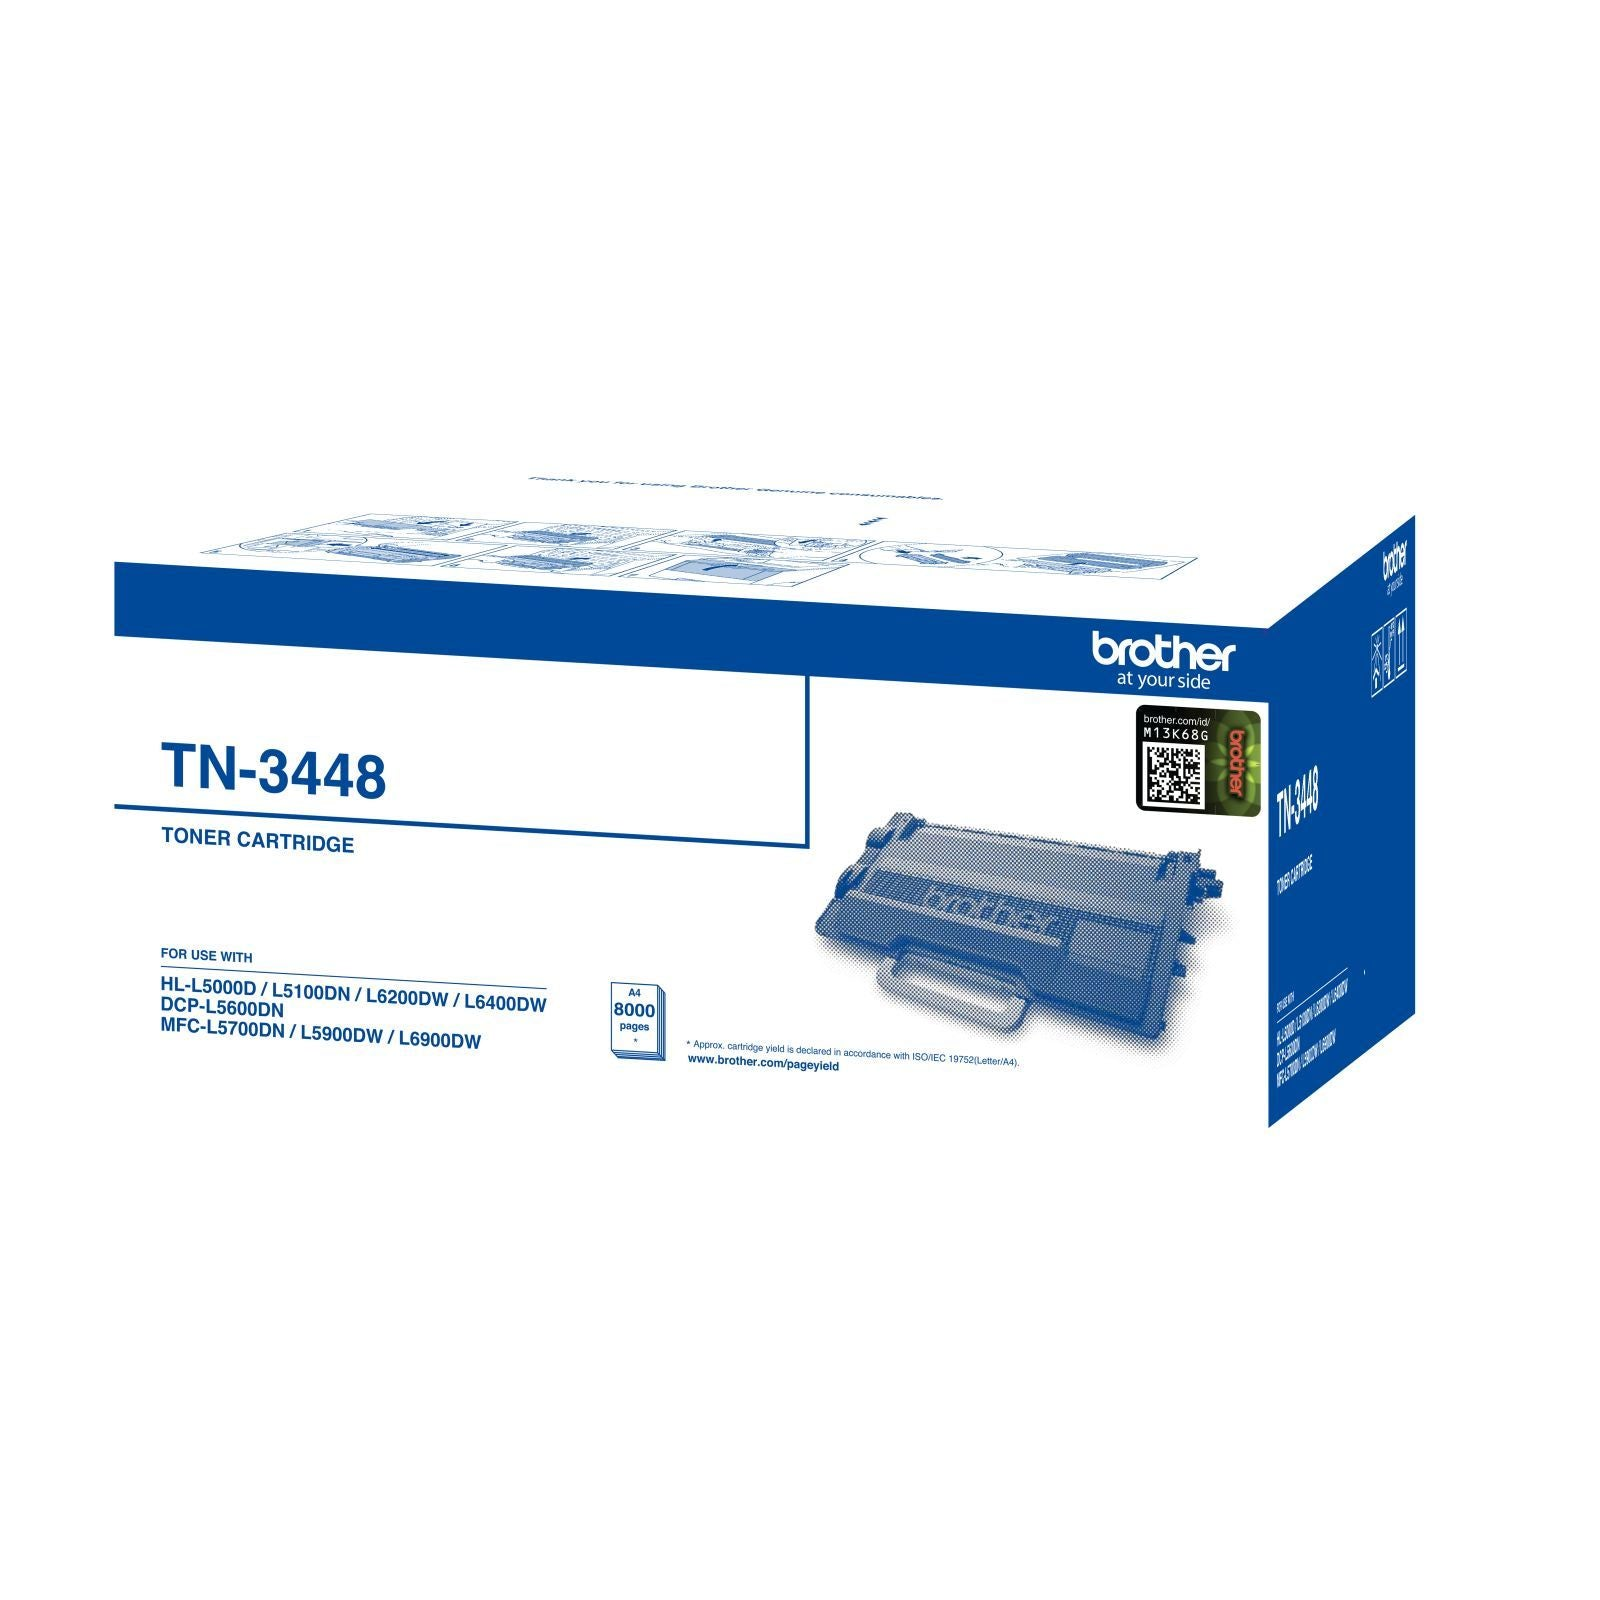 Brother TN-3448 Toner